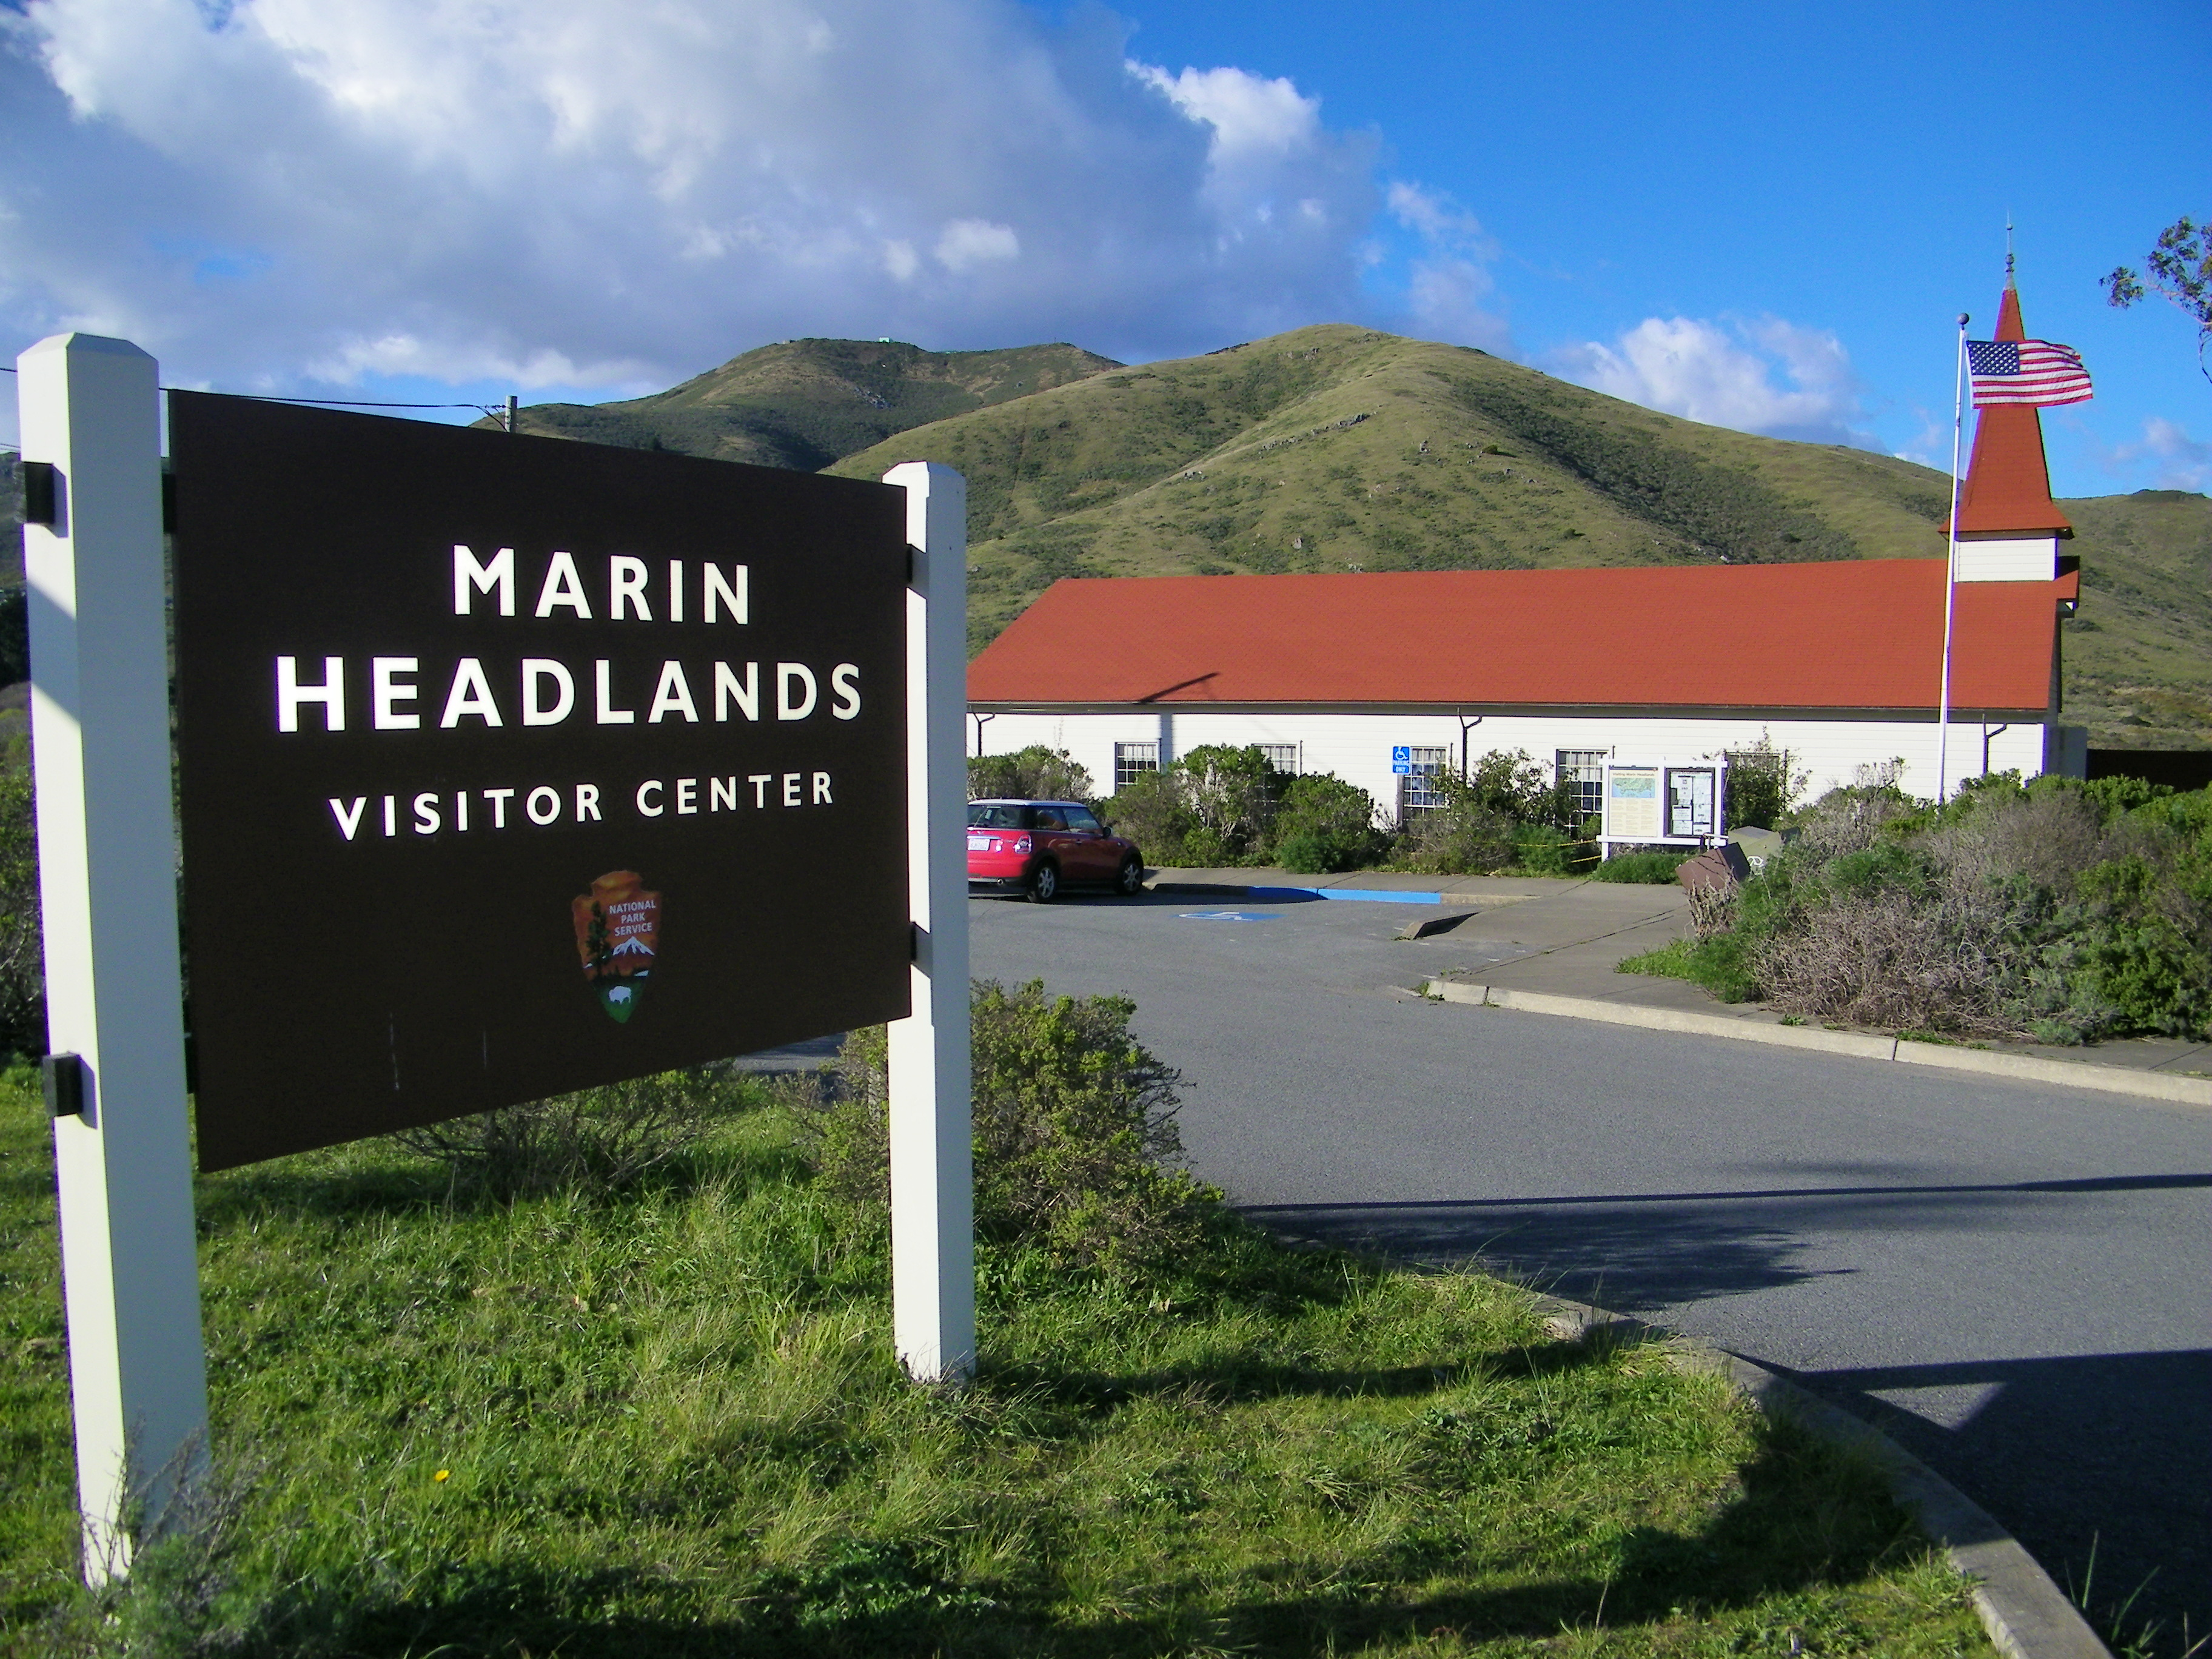 62 Marin Headlands Visitors Center 365 Things To Do Marin